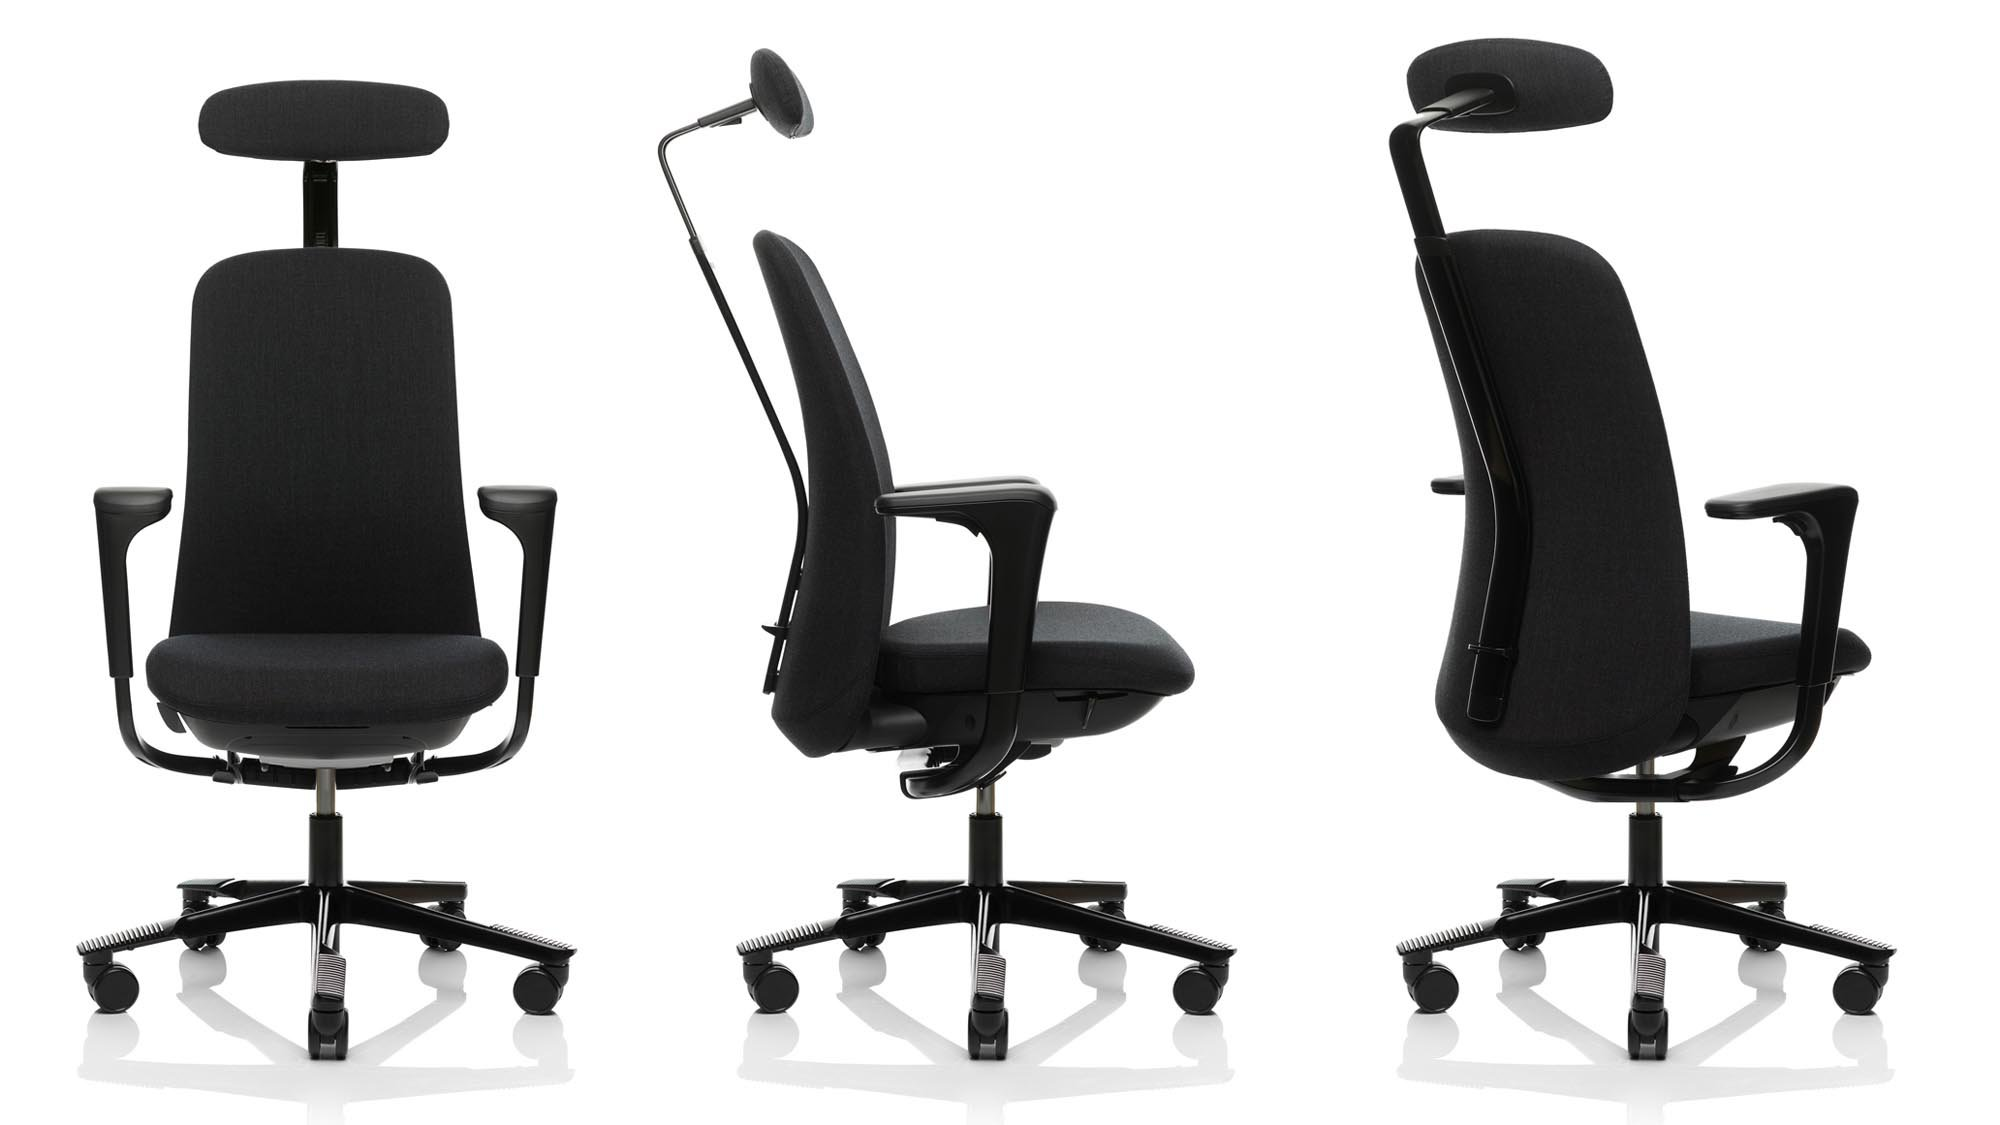 Best Office Chair 2018 Style Comfort And Adjustability From As